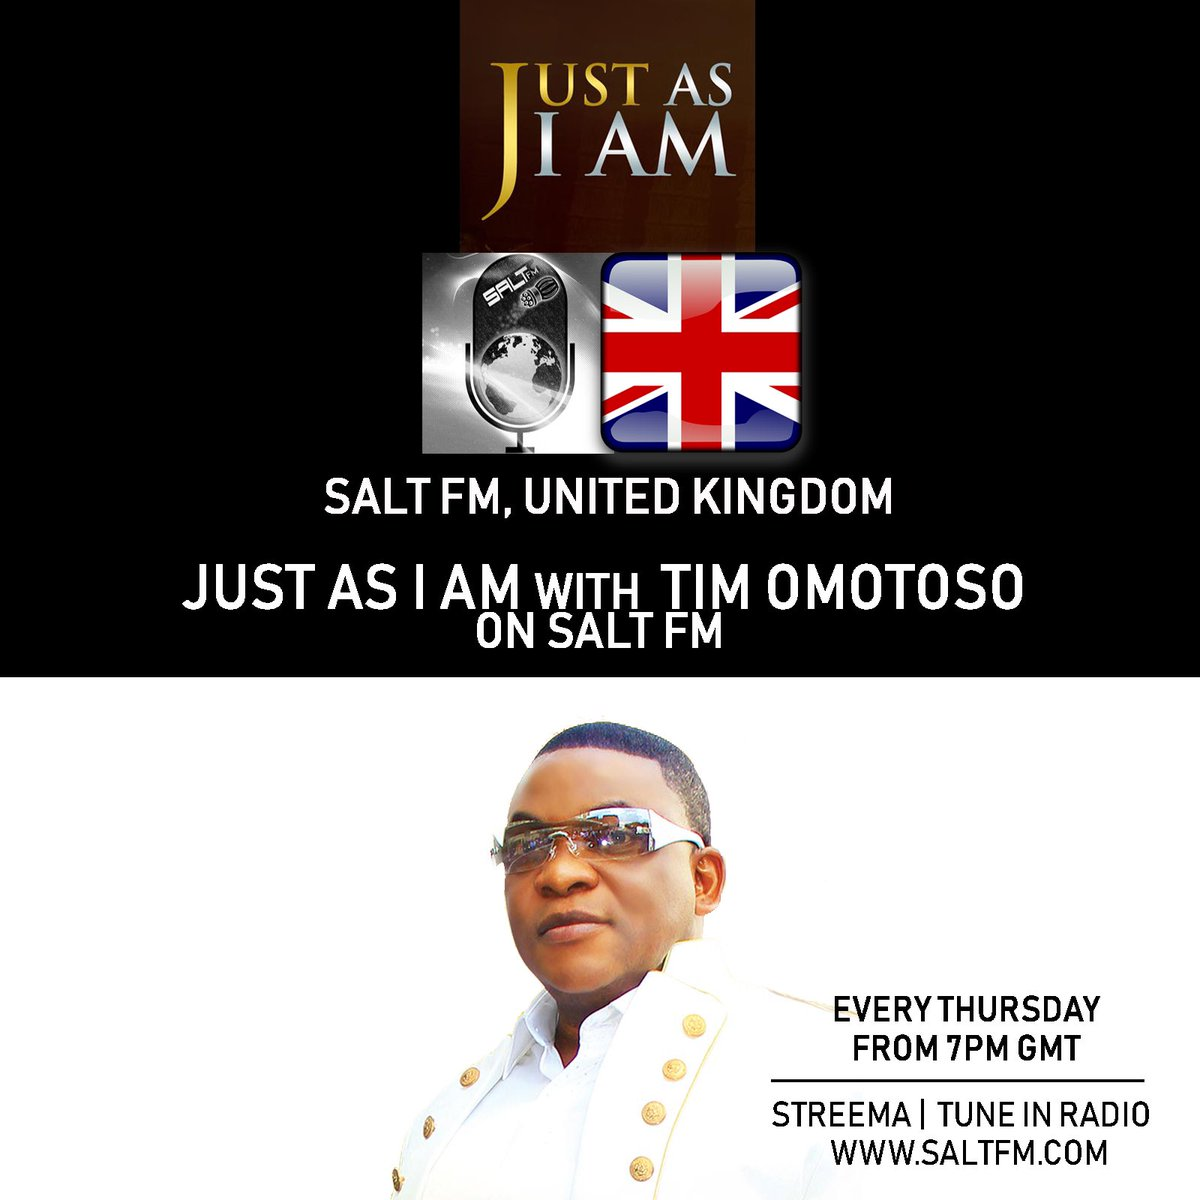 NOW ON❗️ #JUSTASIAM with @freetimomotoso on @saltfm every Thursdays from 7pm GMT  Topic: Power & Authority  🧂